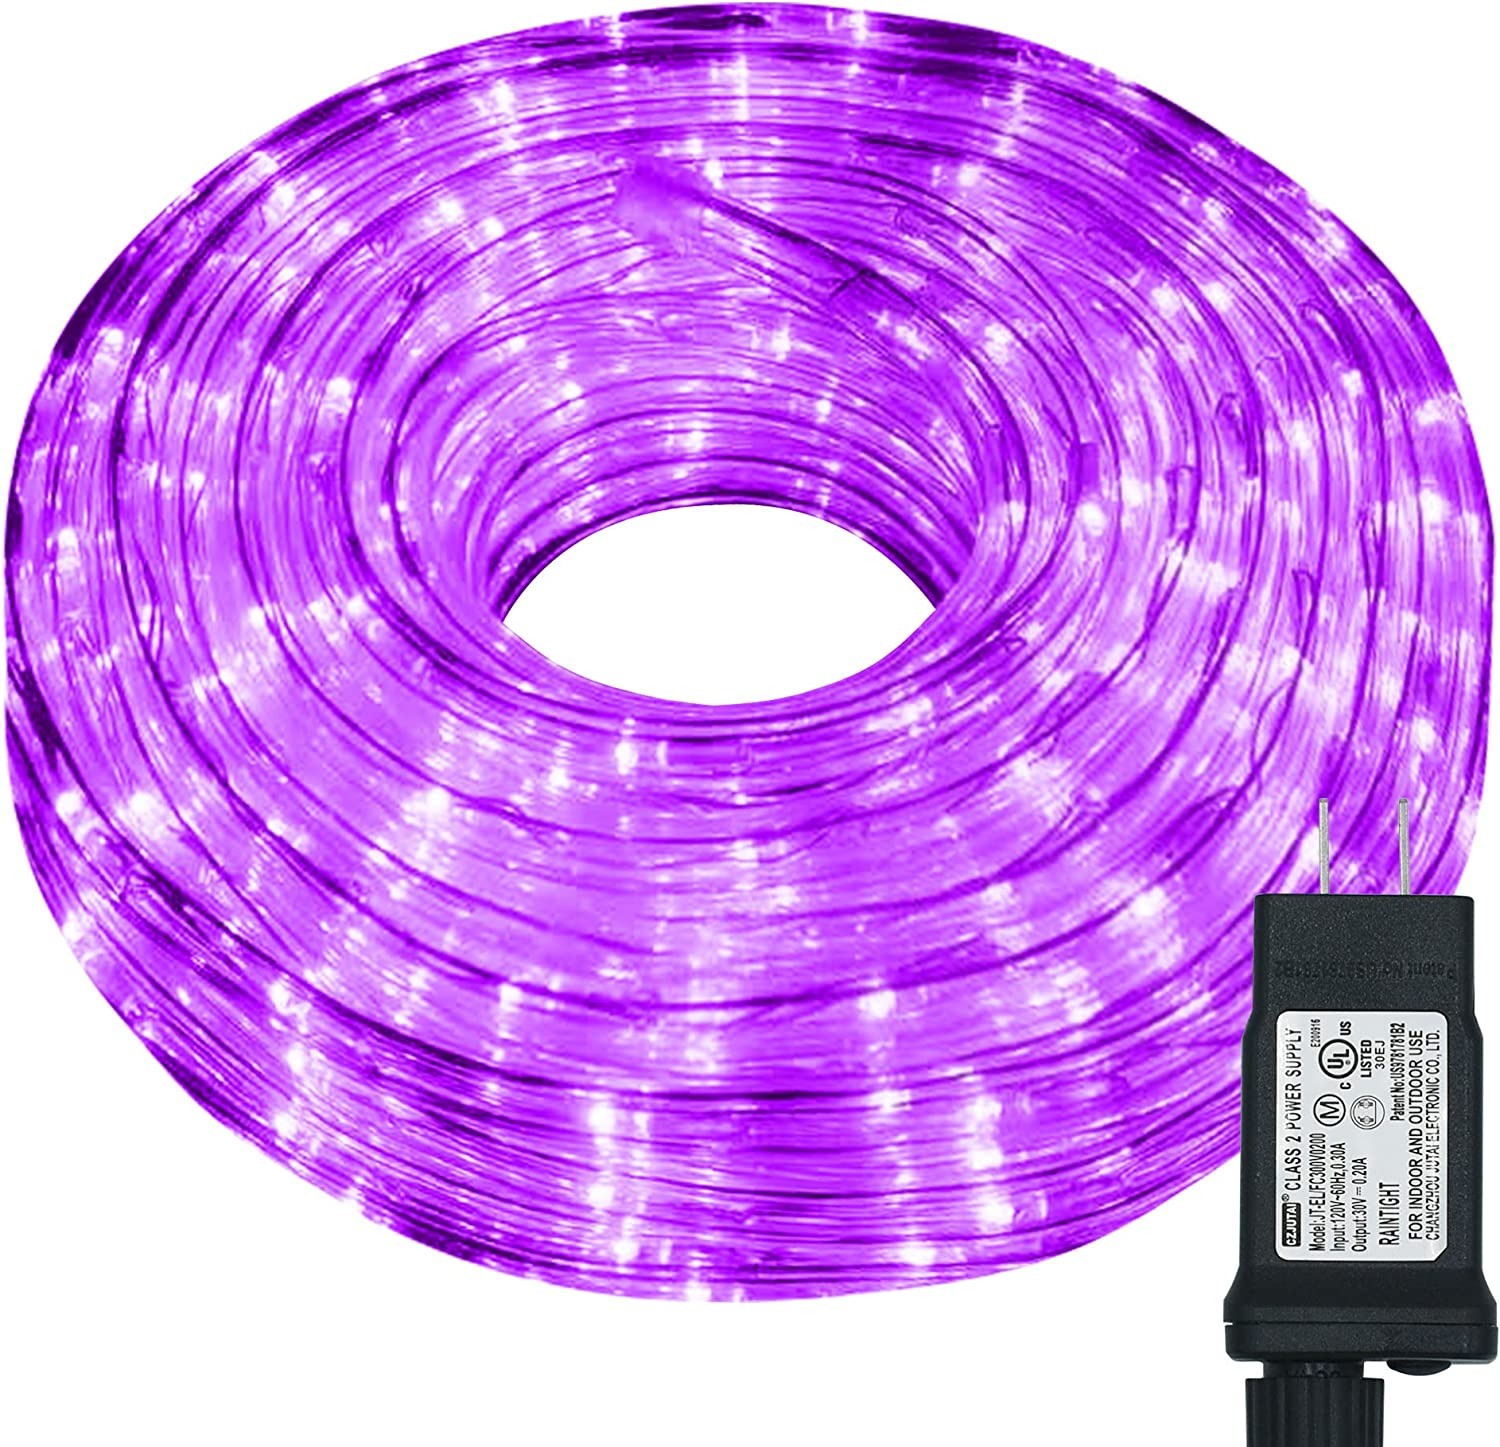 Hezbjiti LED Rope Lights, 240 LED 33ft 8 Modes Control Flexible Low Voltage Rope Lights, Indoor Outdoor Waterproof Tube Light for Gardens, Home, Party, Christmas (240 LED, Purple)